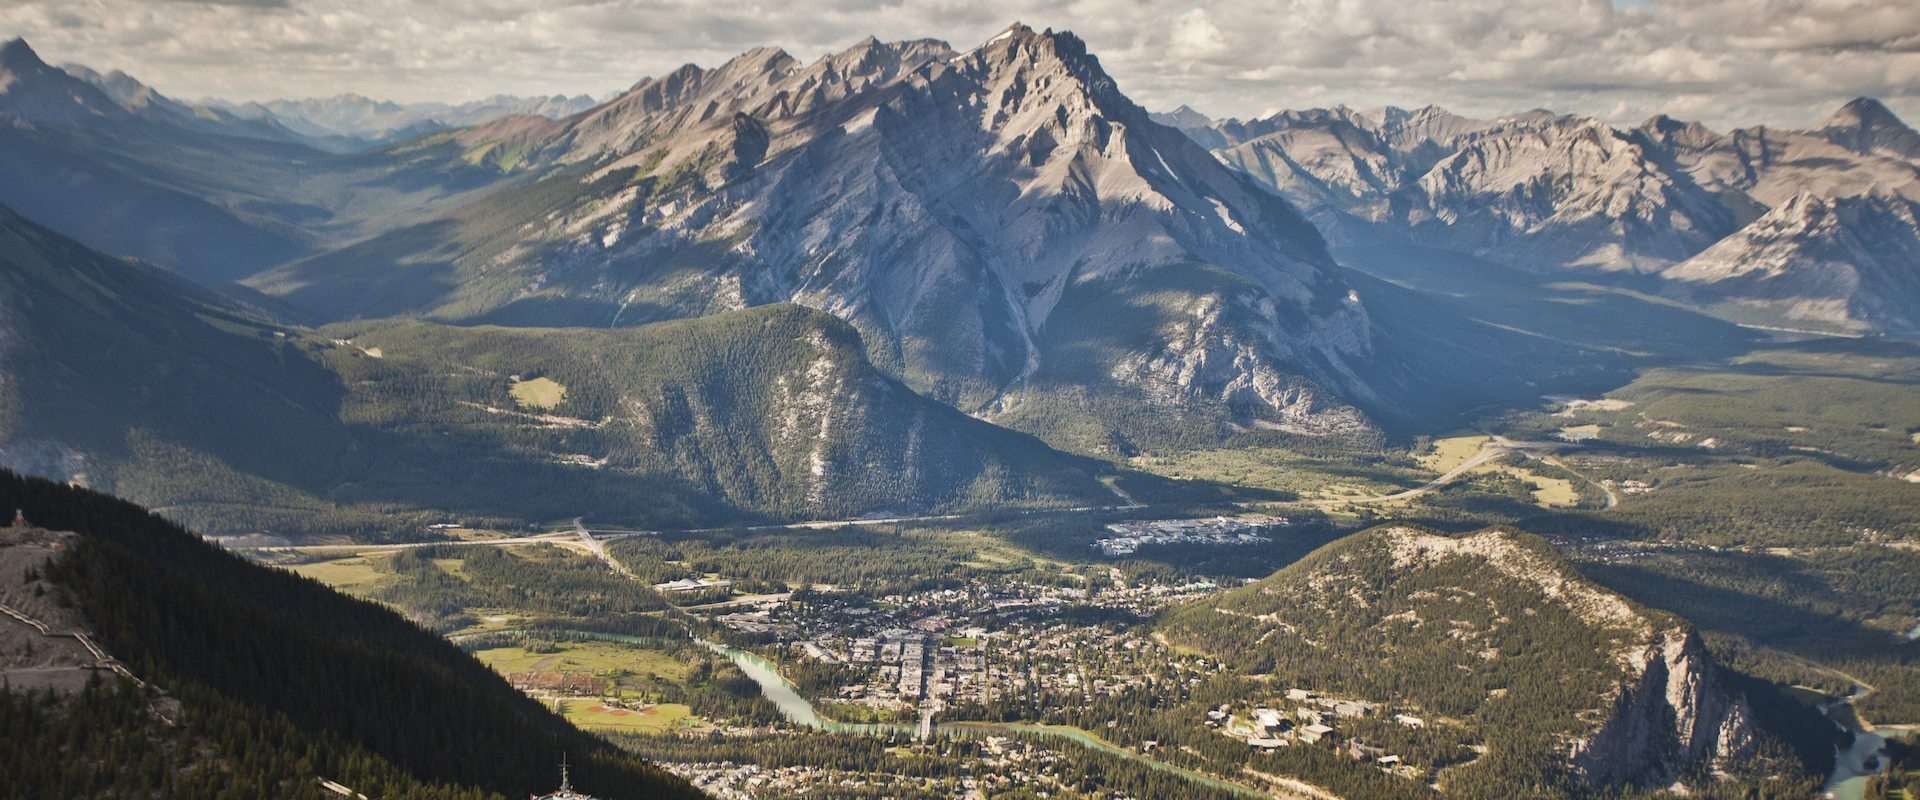 Banff National Park Aerial View with Sulphur Mountain